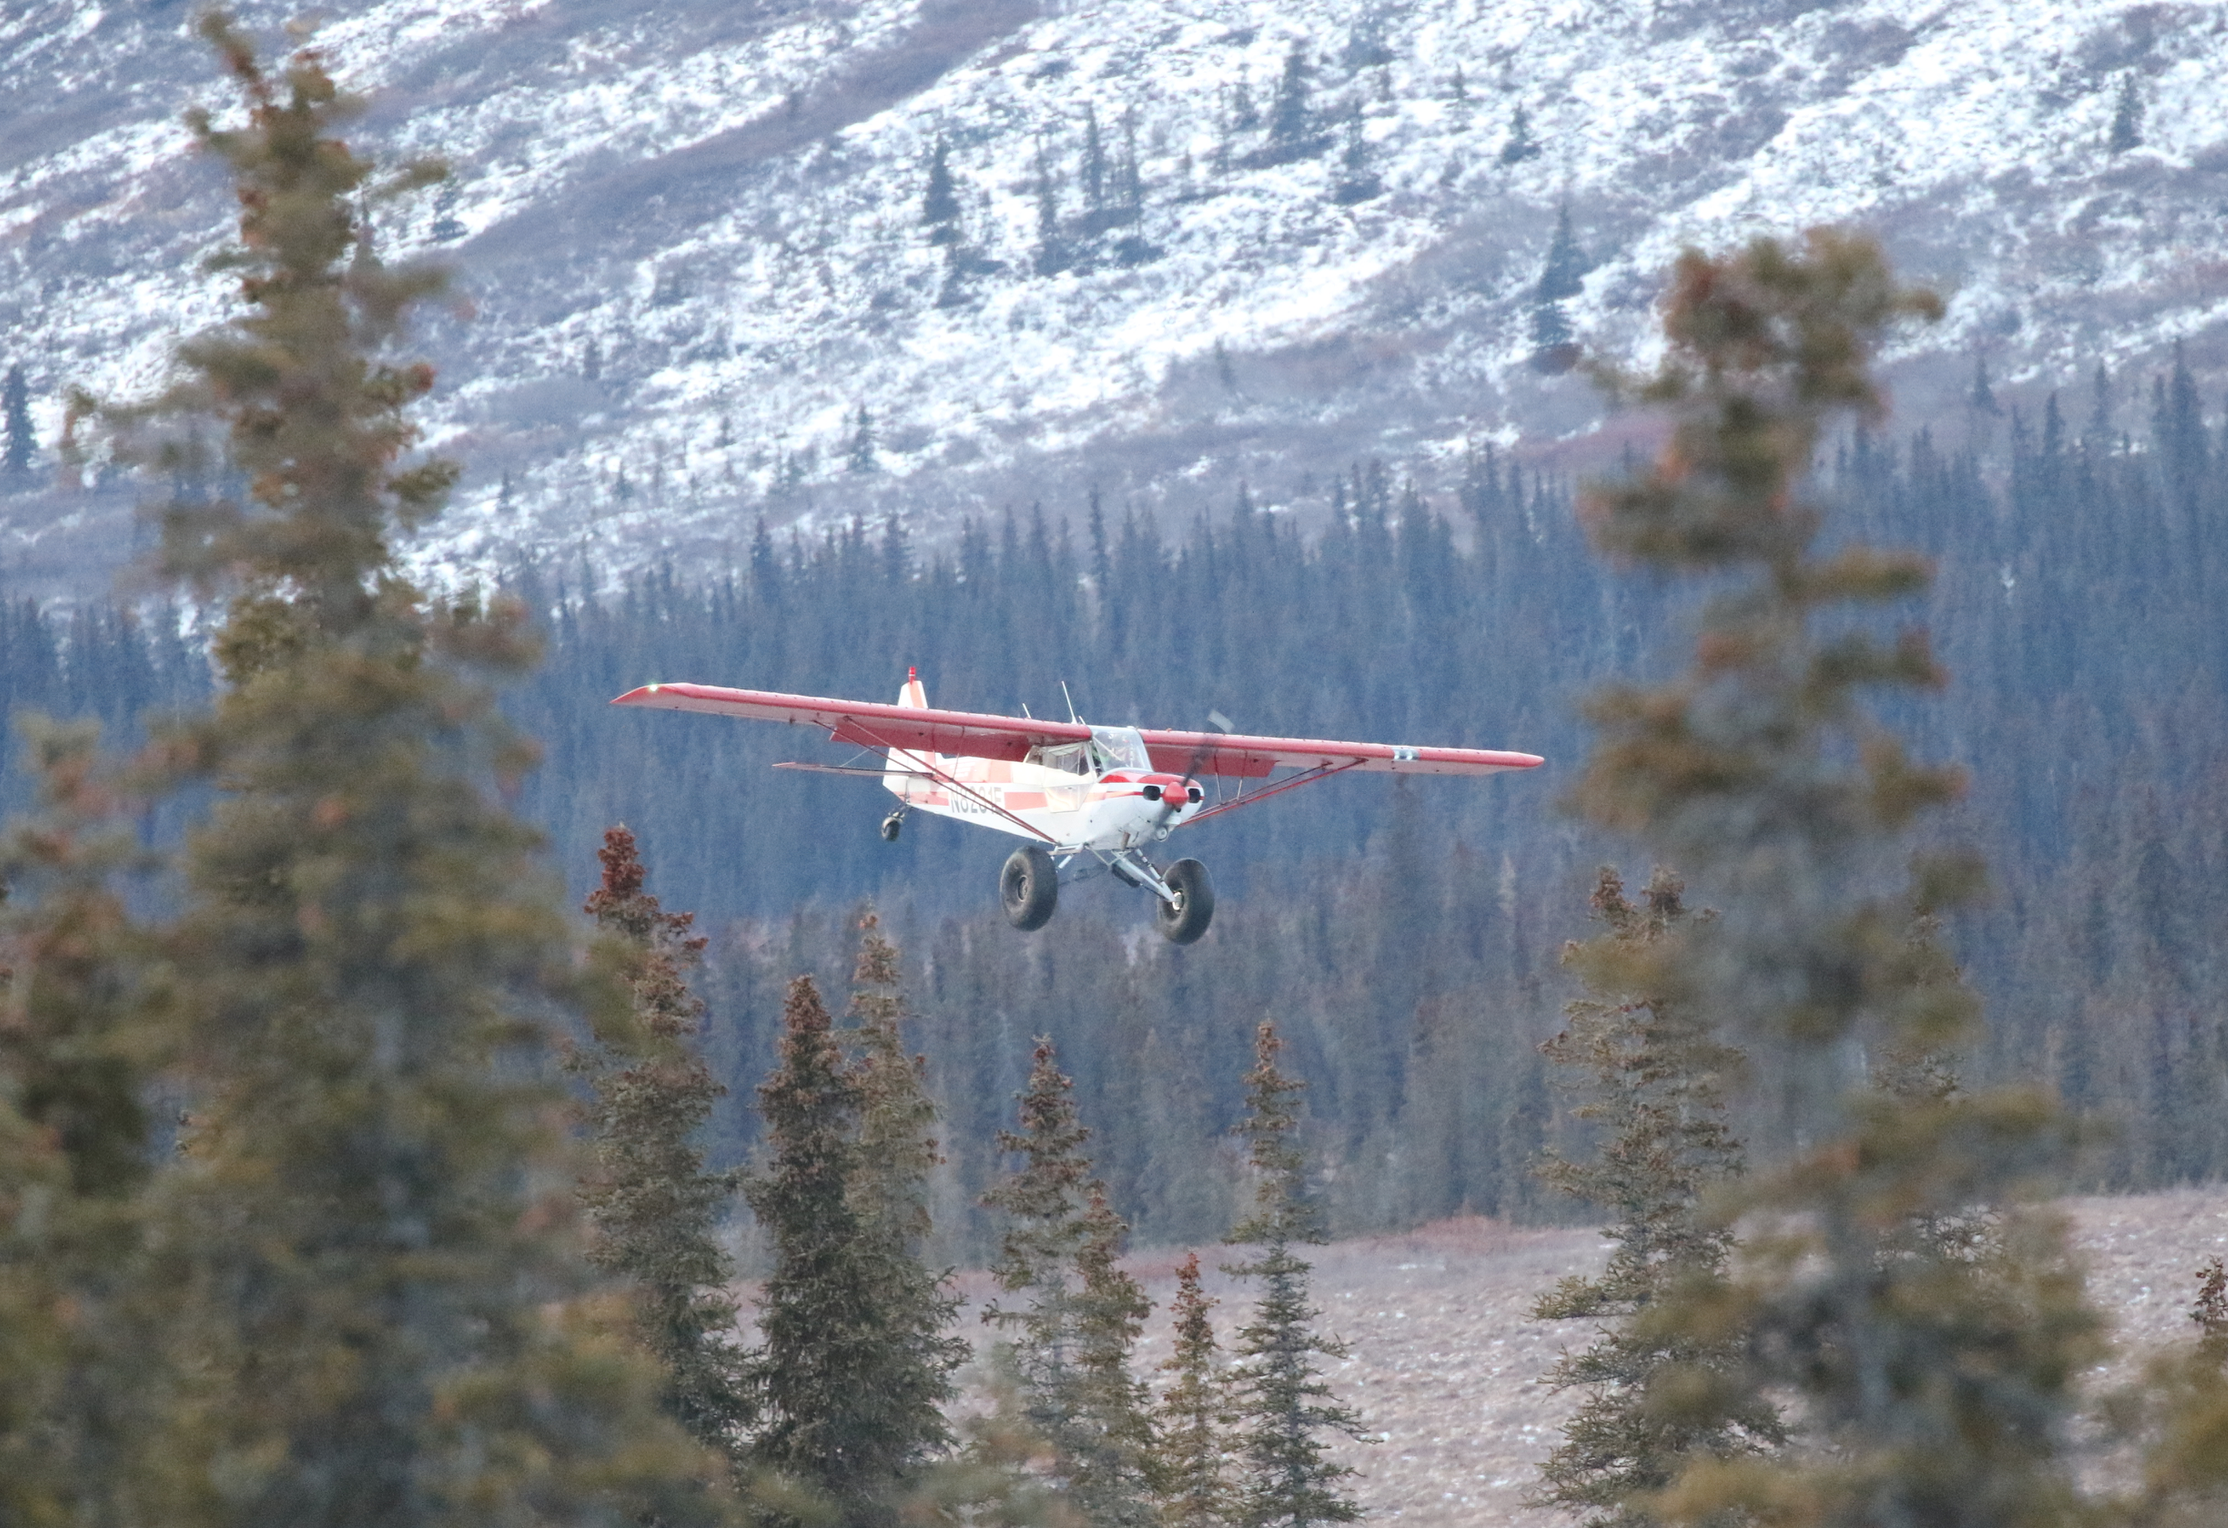 The cub comes in just over the trees, dropping in to expertly skid to a stop on the lake.